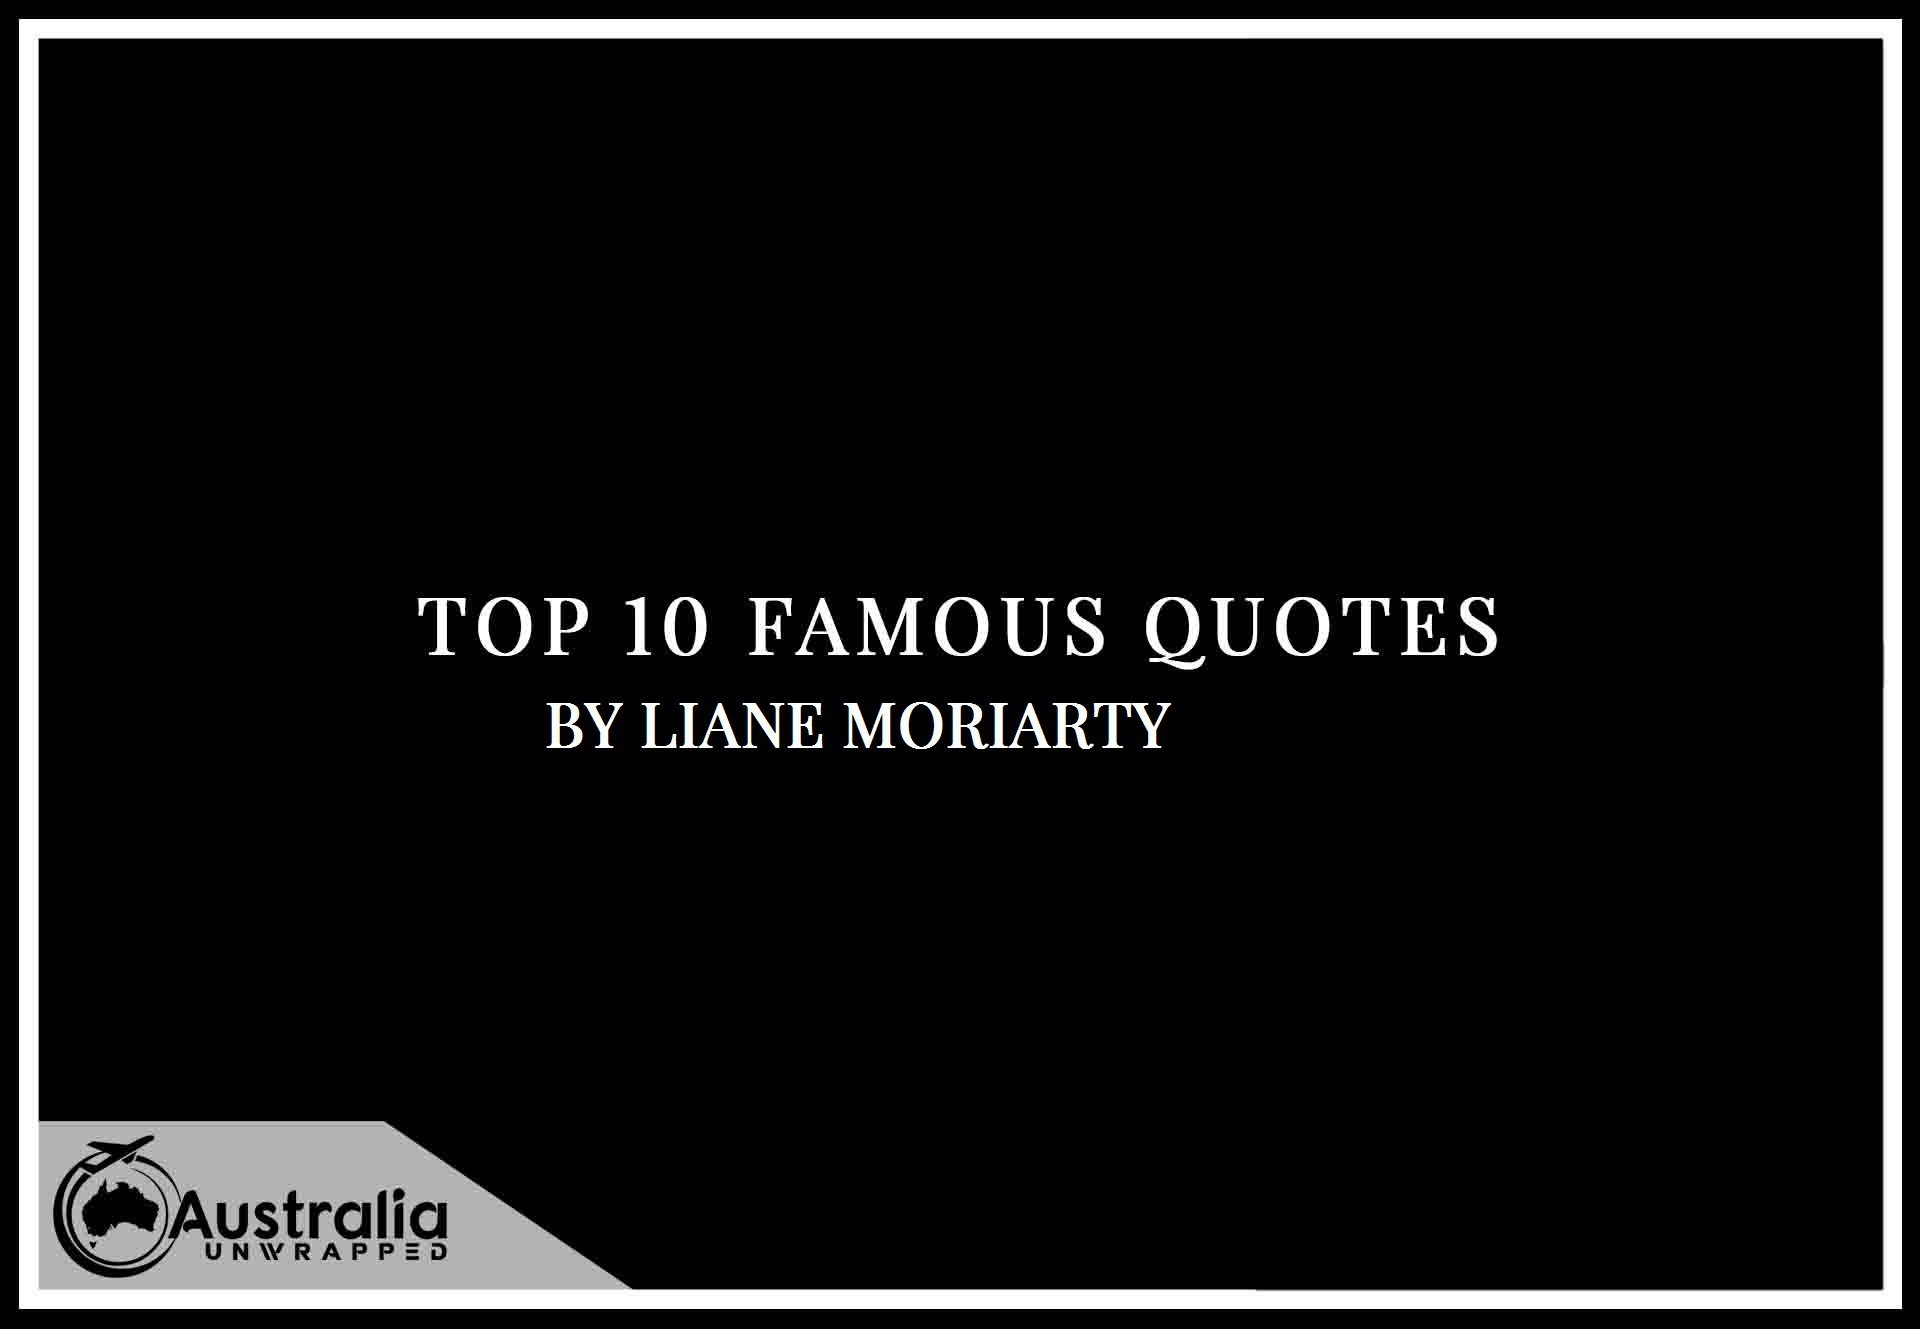 Liane Moriarty's Top 10 Popular and Famous Quotes